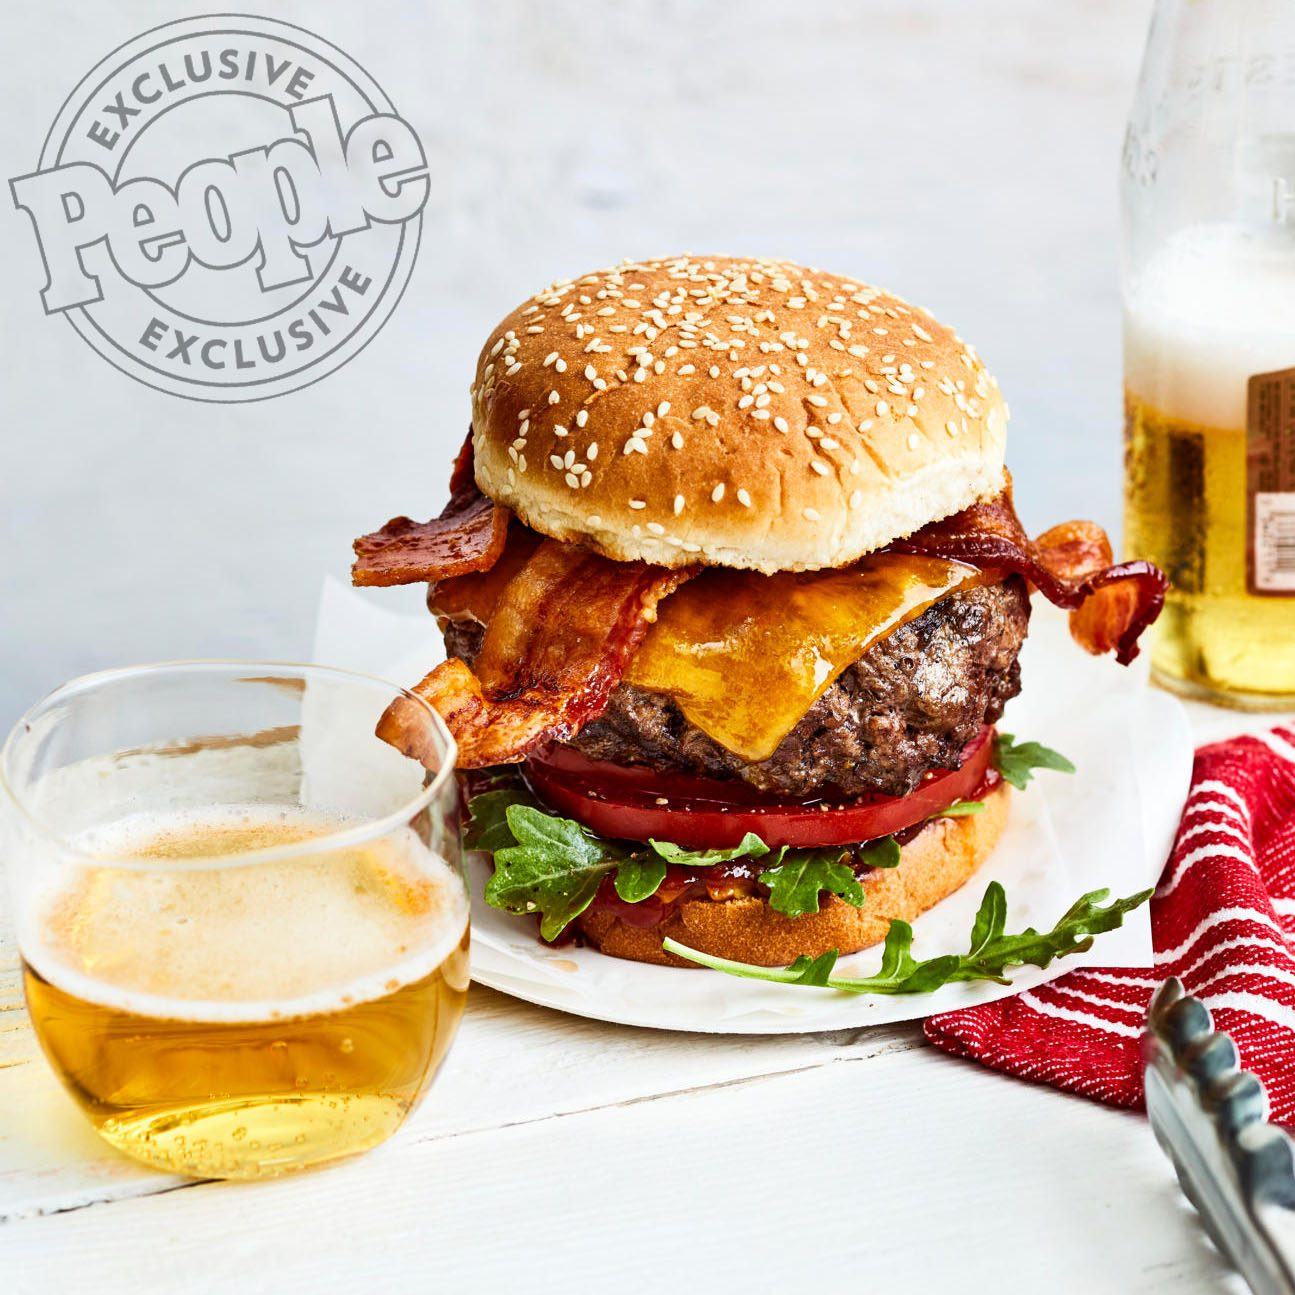 BRUCE & ERIC BROMBERG'S BACON CHEESEBURGERS WITH RED-ONION RELISH